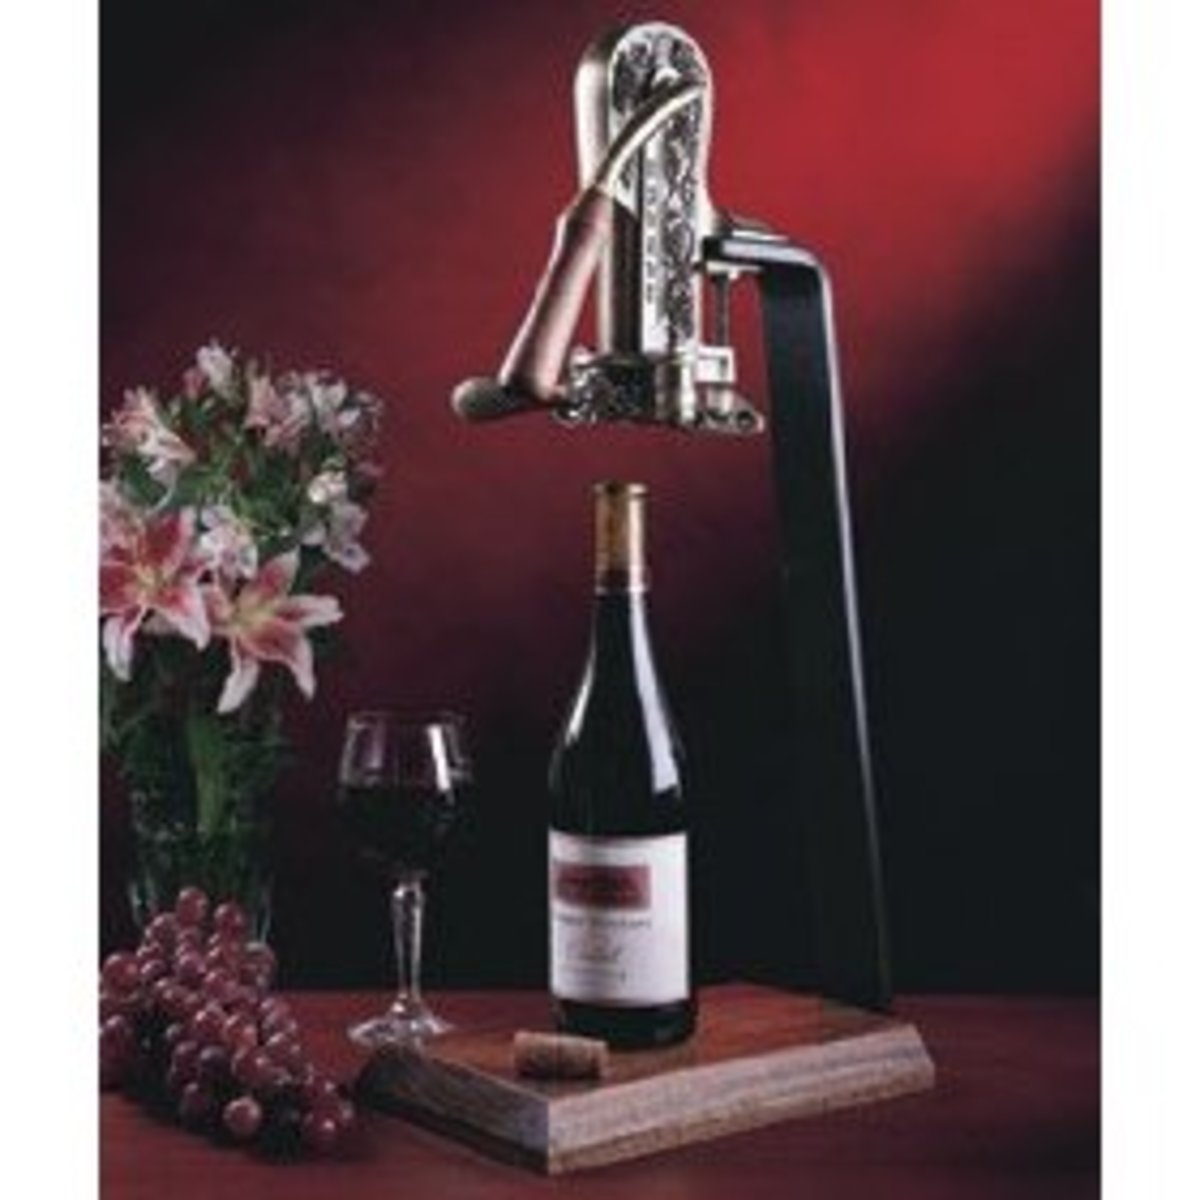 Rogar Estate Lever Wine Opener Corkscrew